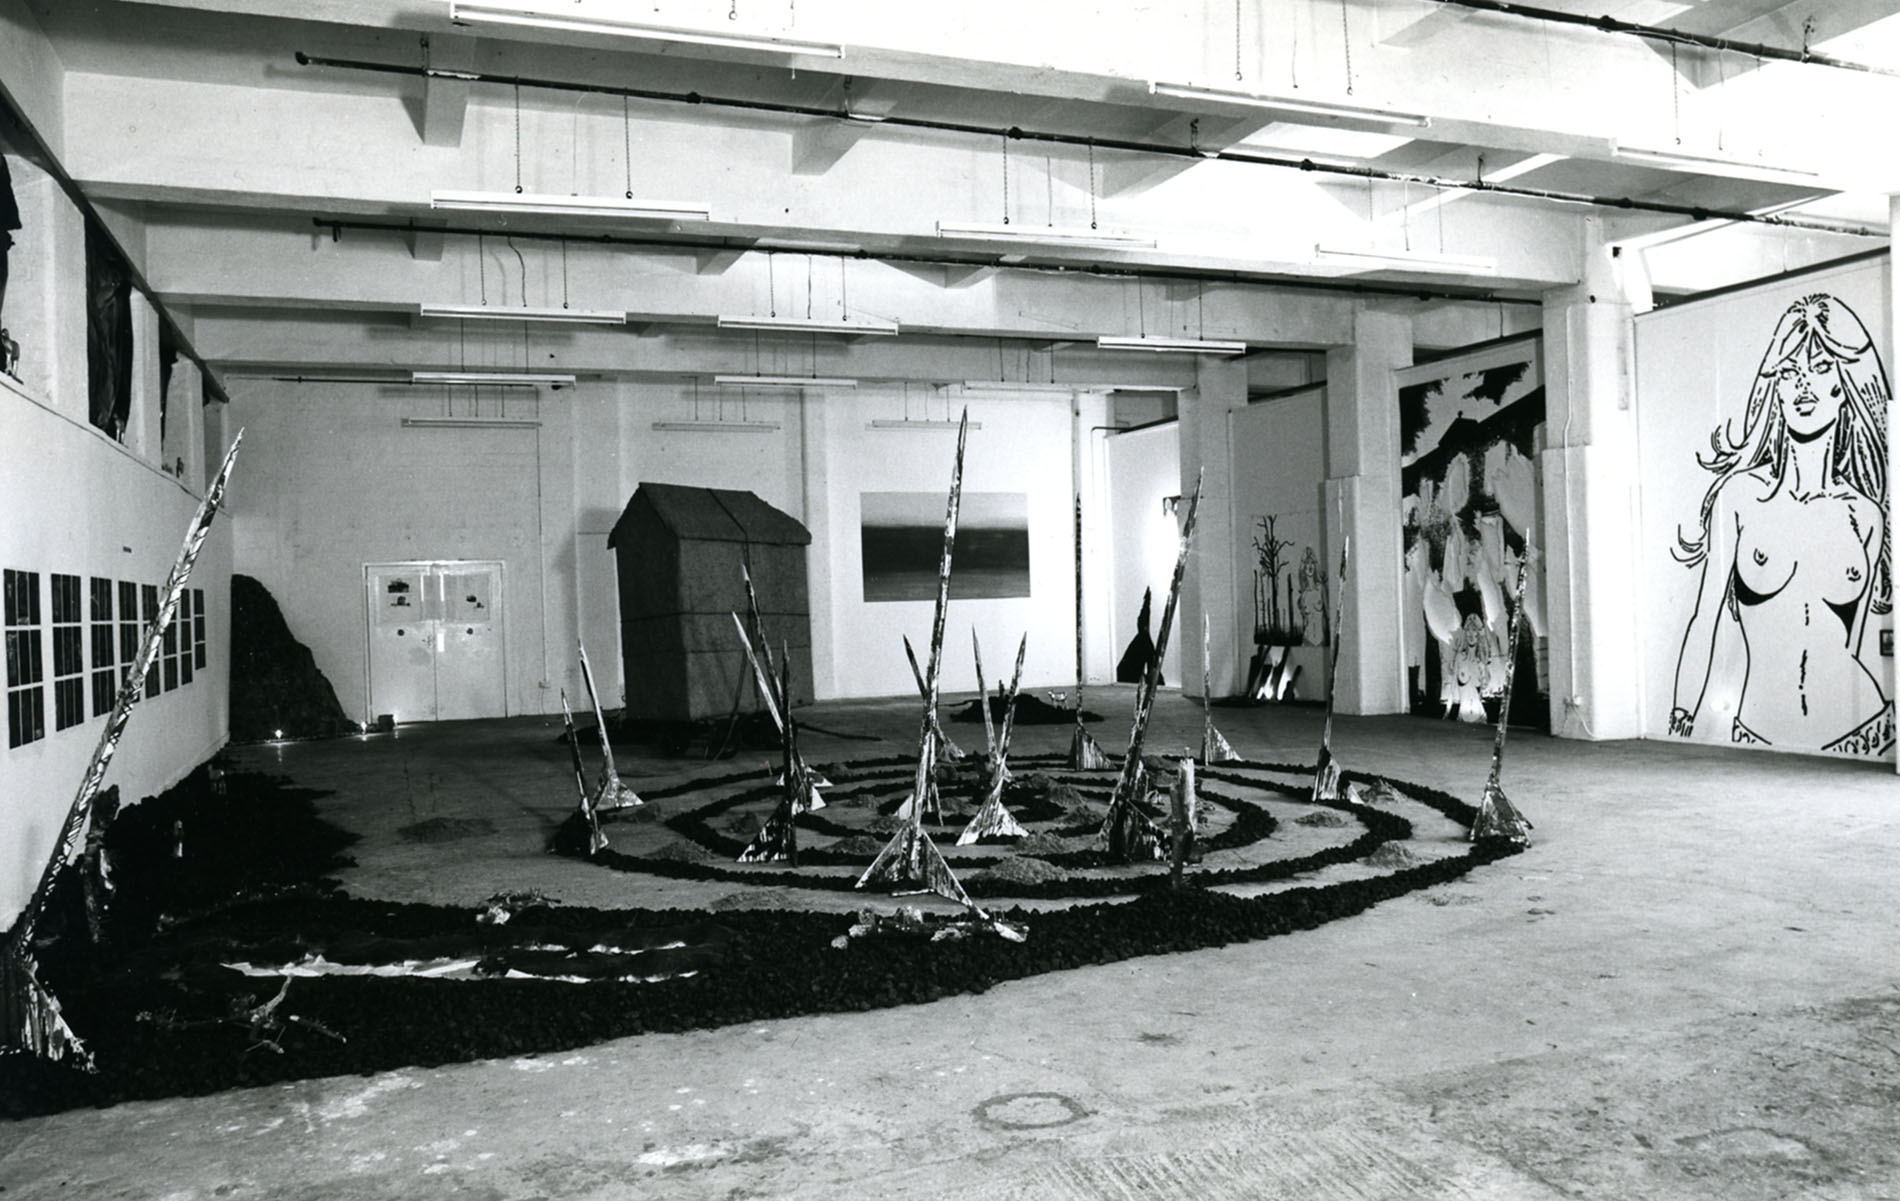 Ruins of Glamour, Glamour of Ruins - Installation View